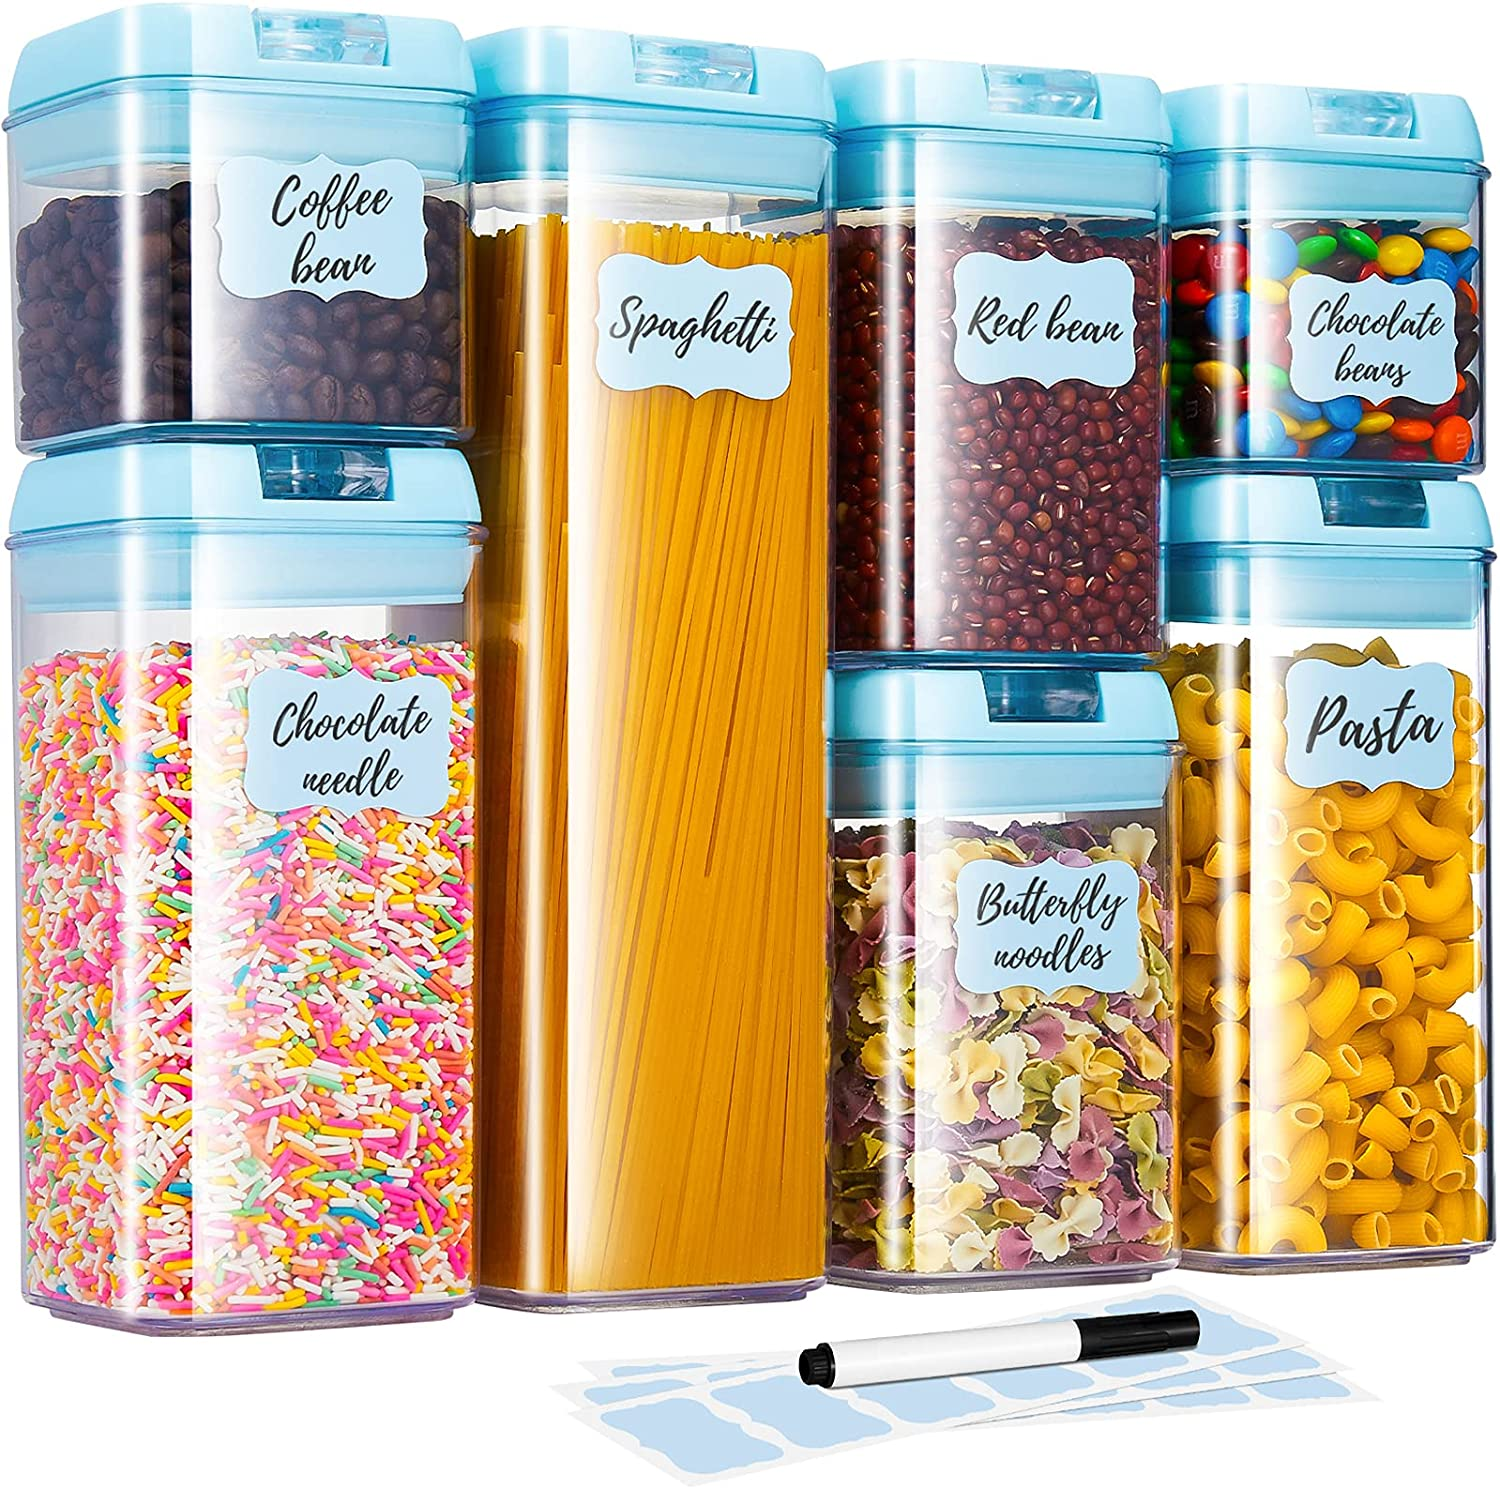 Airtight Food Storage Containers, 7 Pieces Plastic Cereal Container Set with Lids for Dry Food, BPA-Free Pantry Organization Canisters (18 Labels & 1 Chalk Marker)